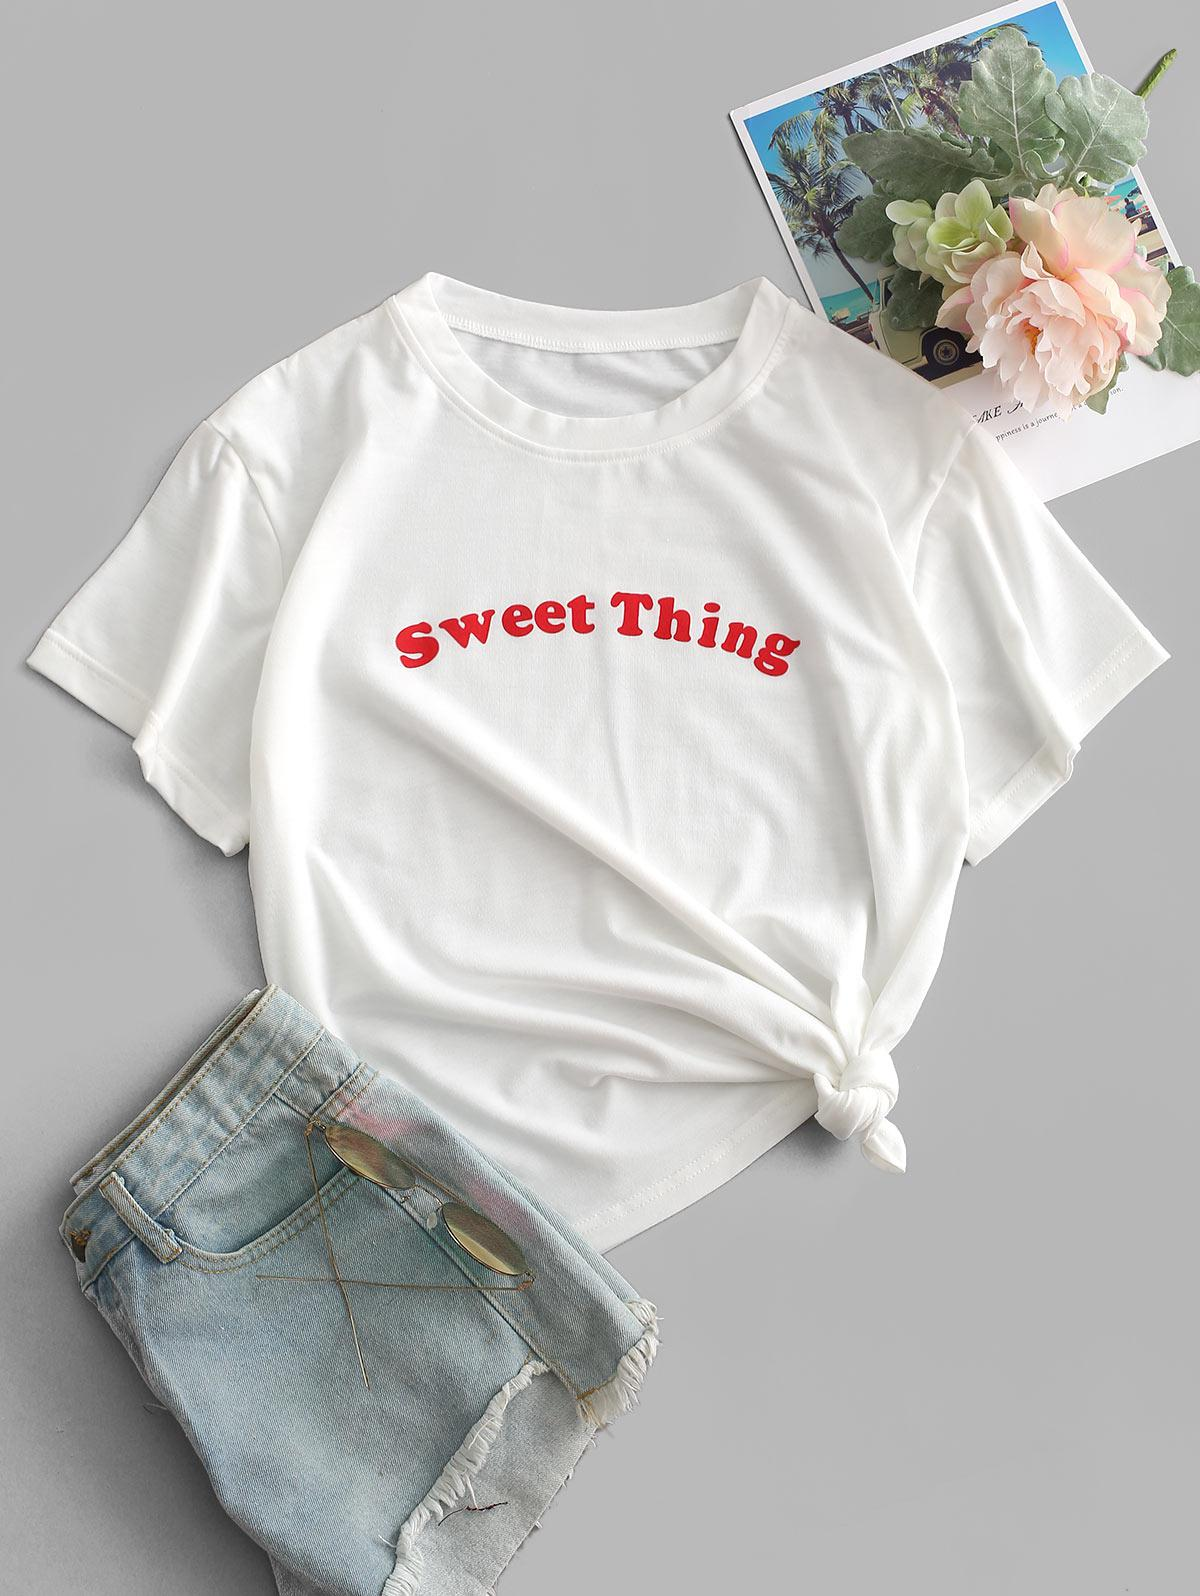 Sweet Thing Graphic Basic T-shirt